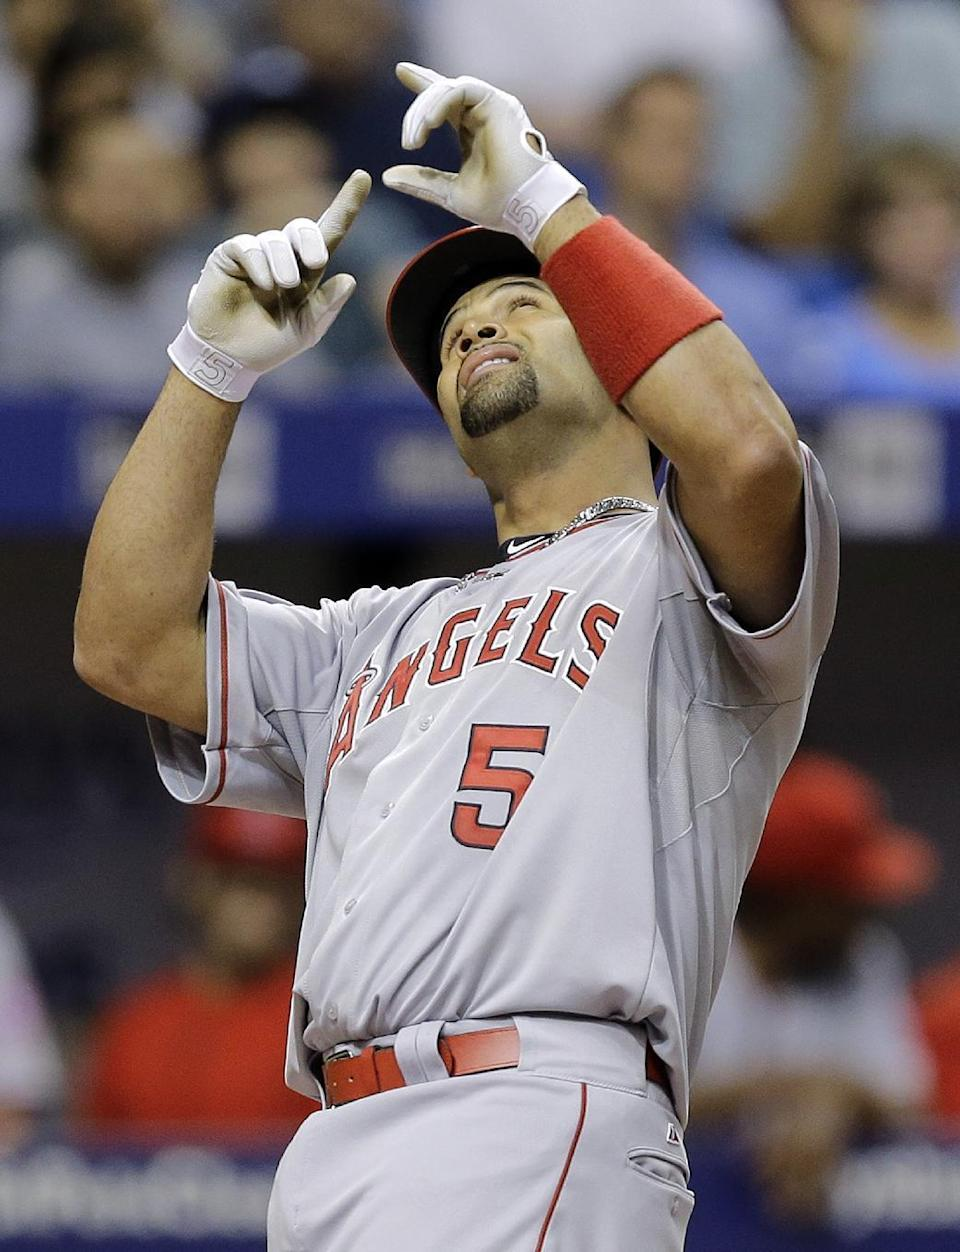 Los Angeles Angels' Albert Pujols reacts after his home run off Tampa Bay Rays starting pitcher Nathan Karns during the fifth inning of a baseball game Tuesday, June 9, 2015, in St. Petersburg, Fla. (AP Photo/Chris O'Meara)